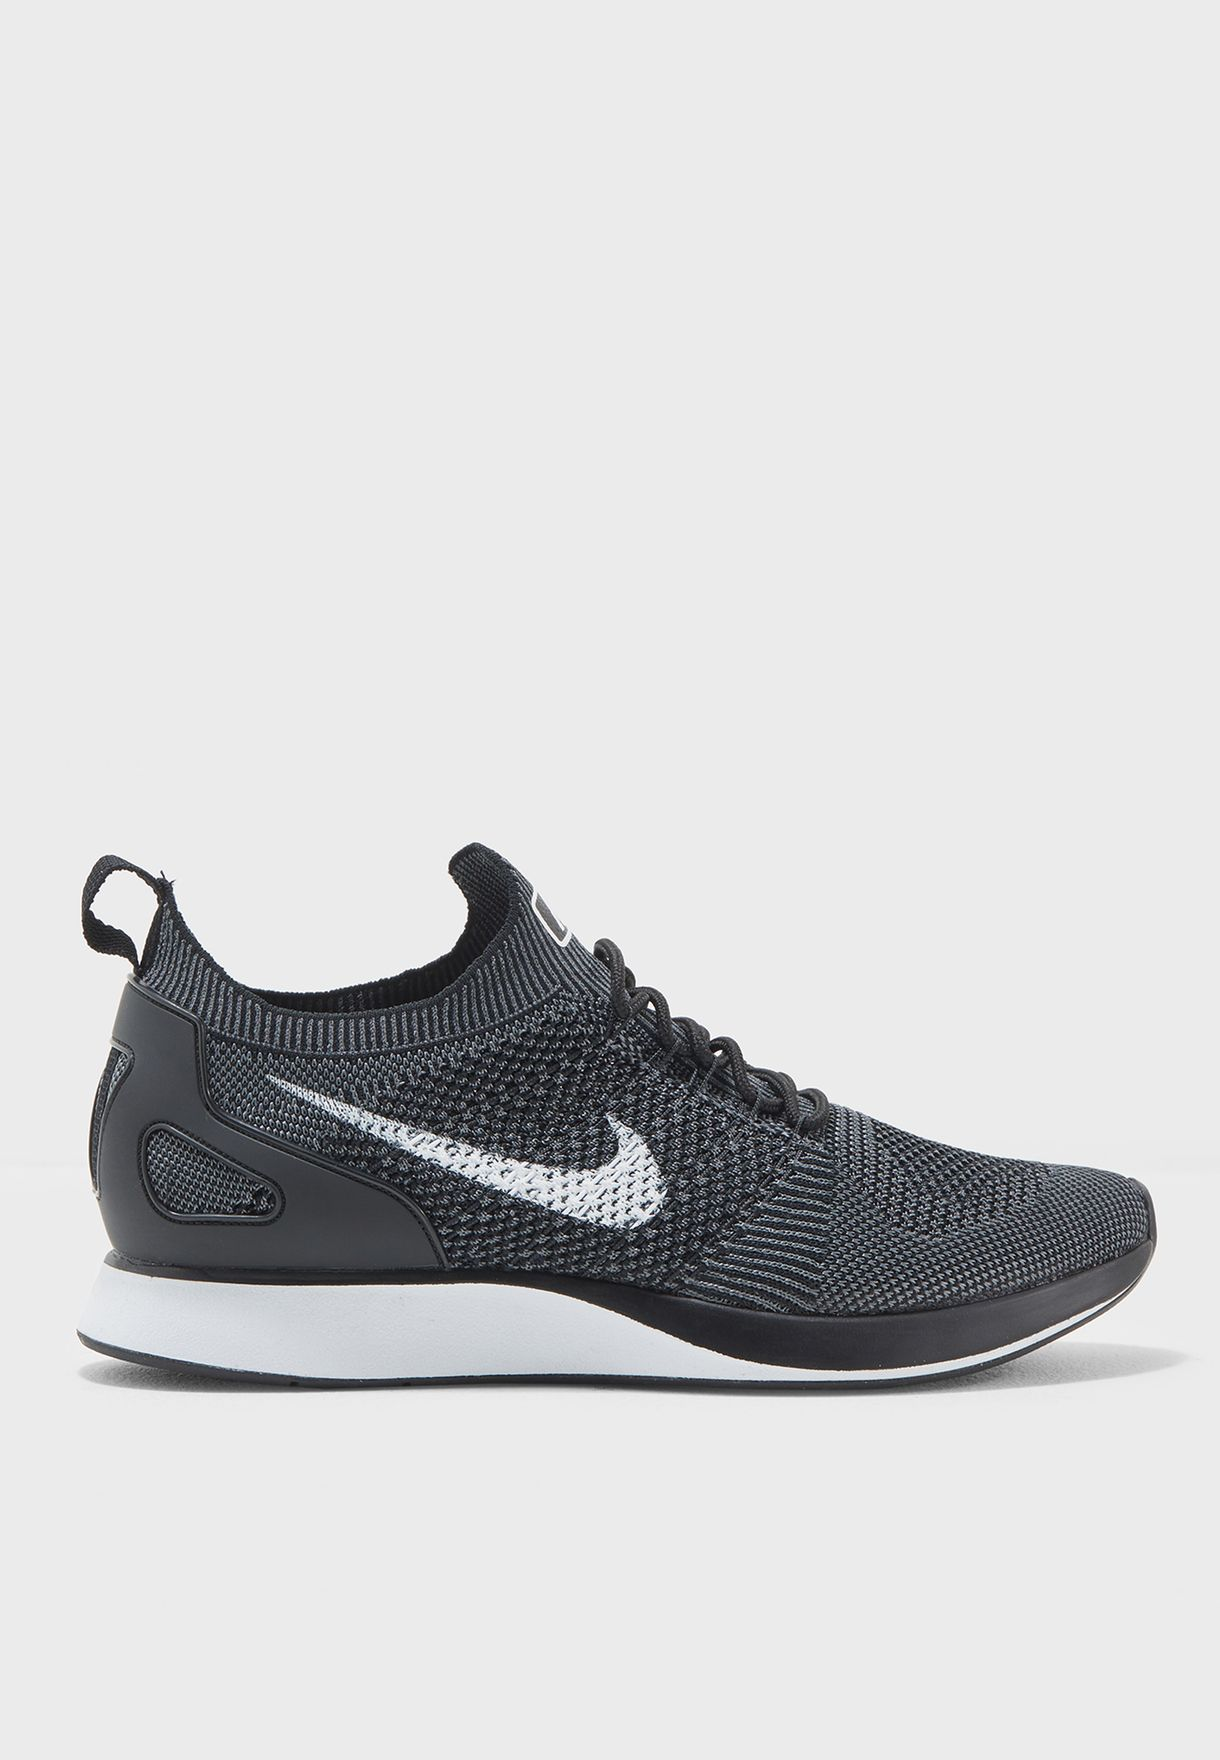 a7aefbed2e94 Shop Nike black Air Zoom Mariah Flyknit Racer 918264-001 for Men in ...